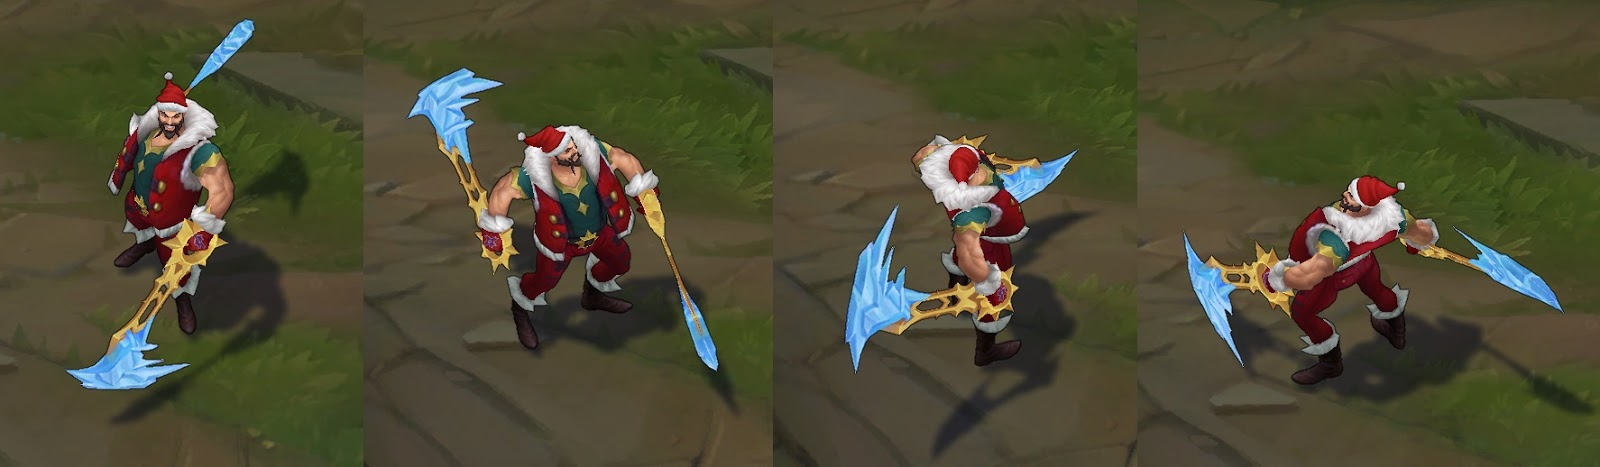 santa draven picture for league